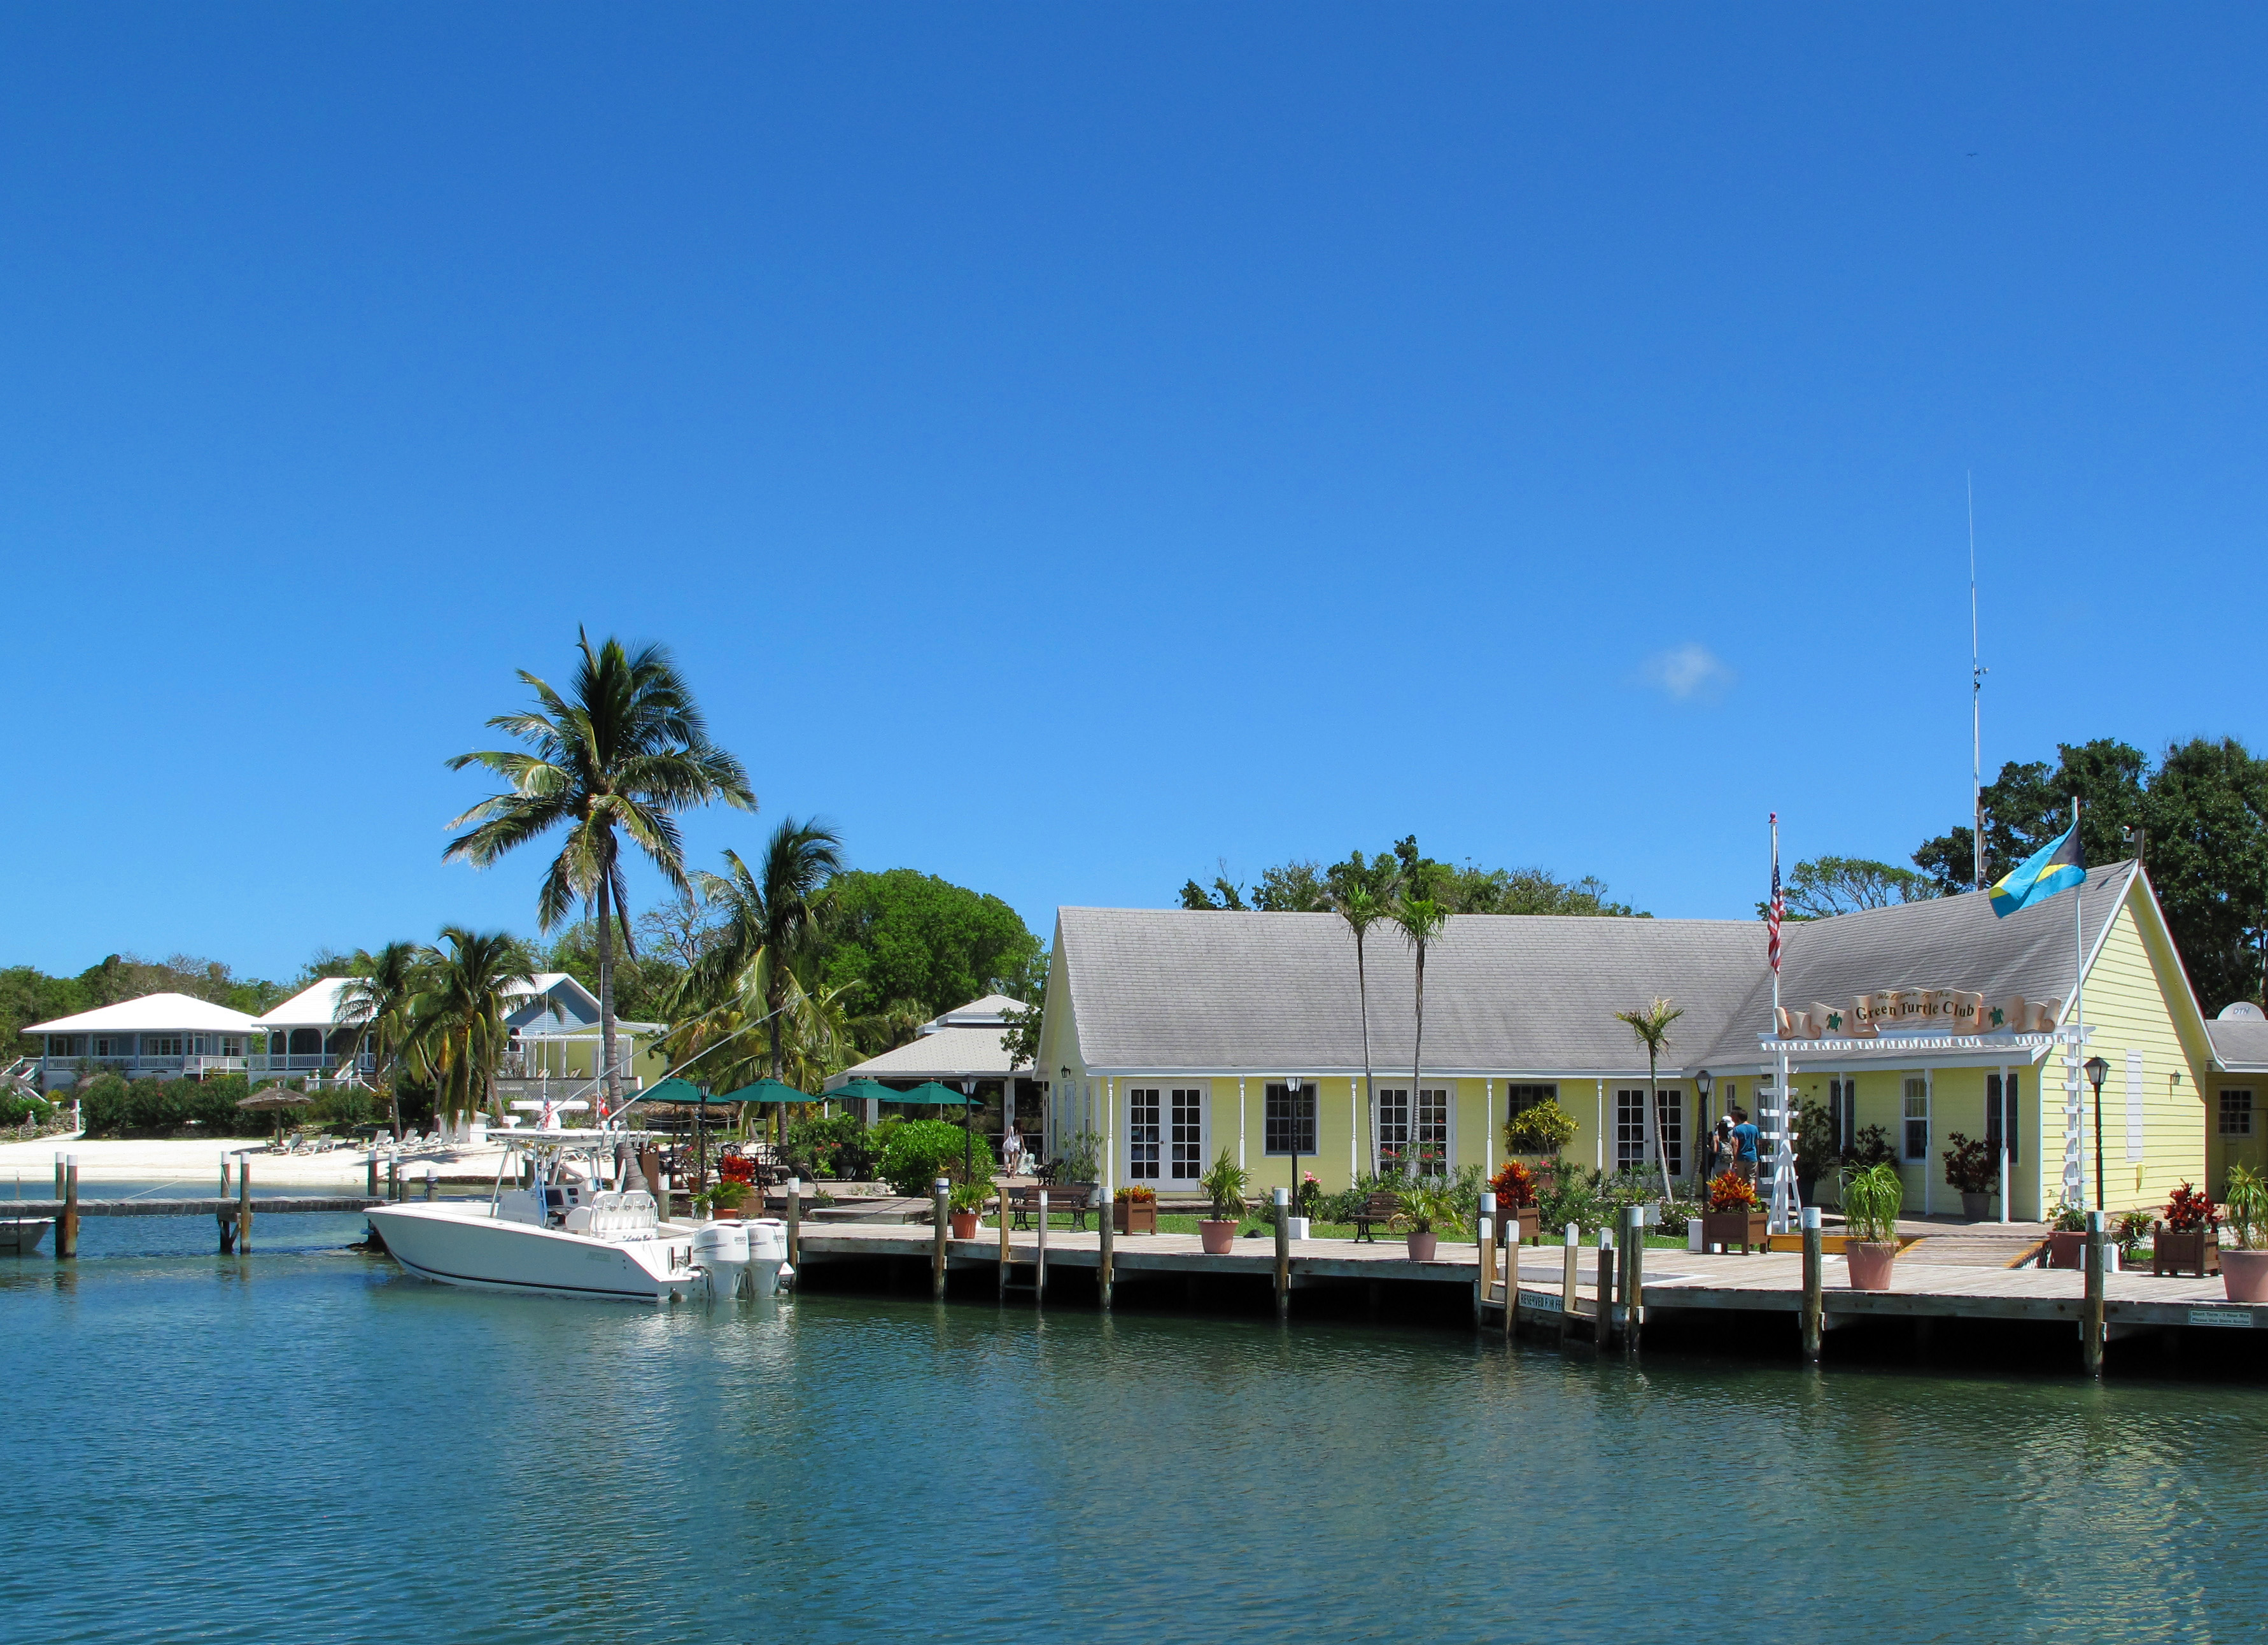 House rentals green turtle cay - The Green Turtle Club